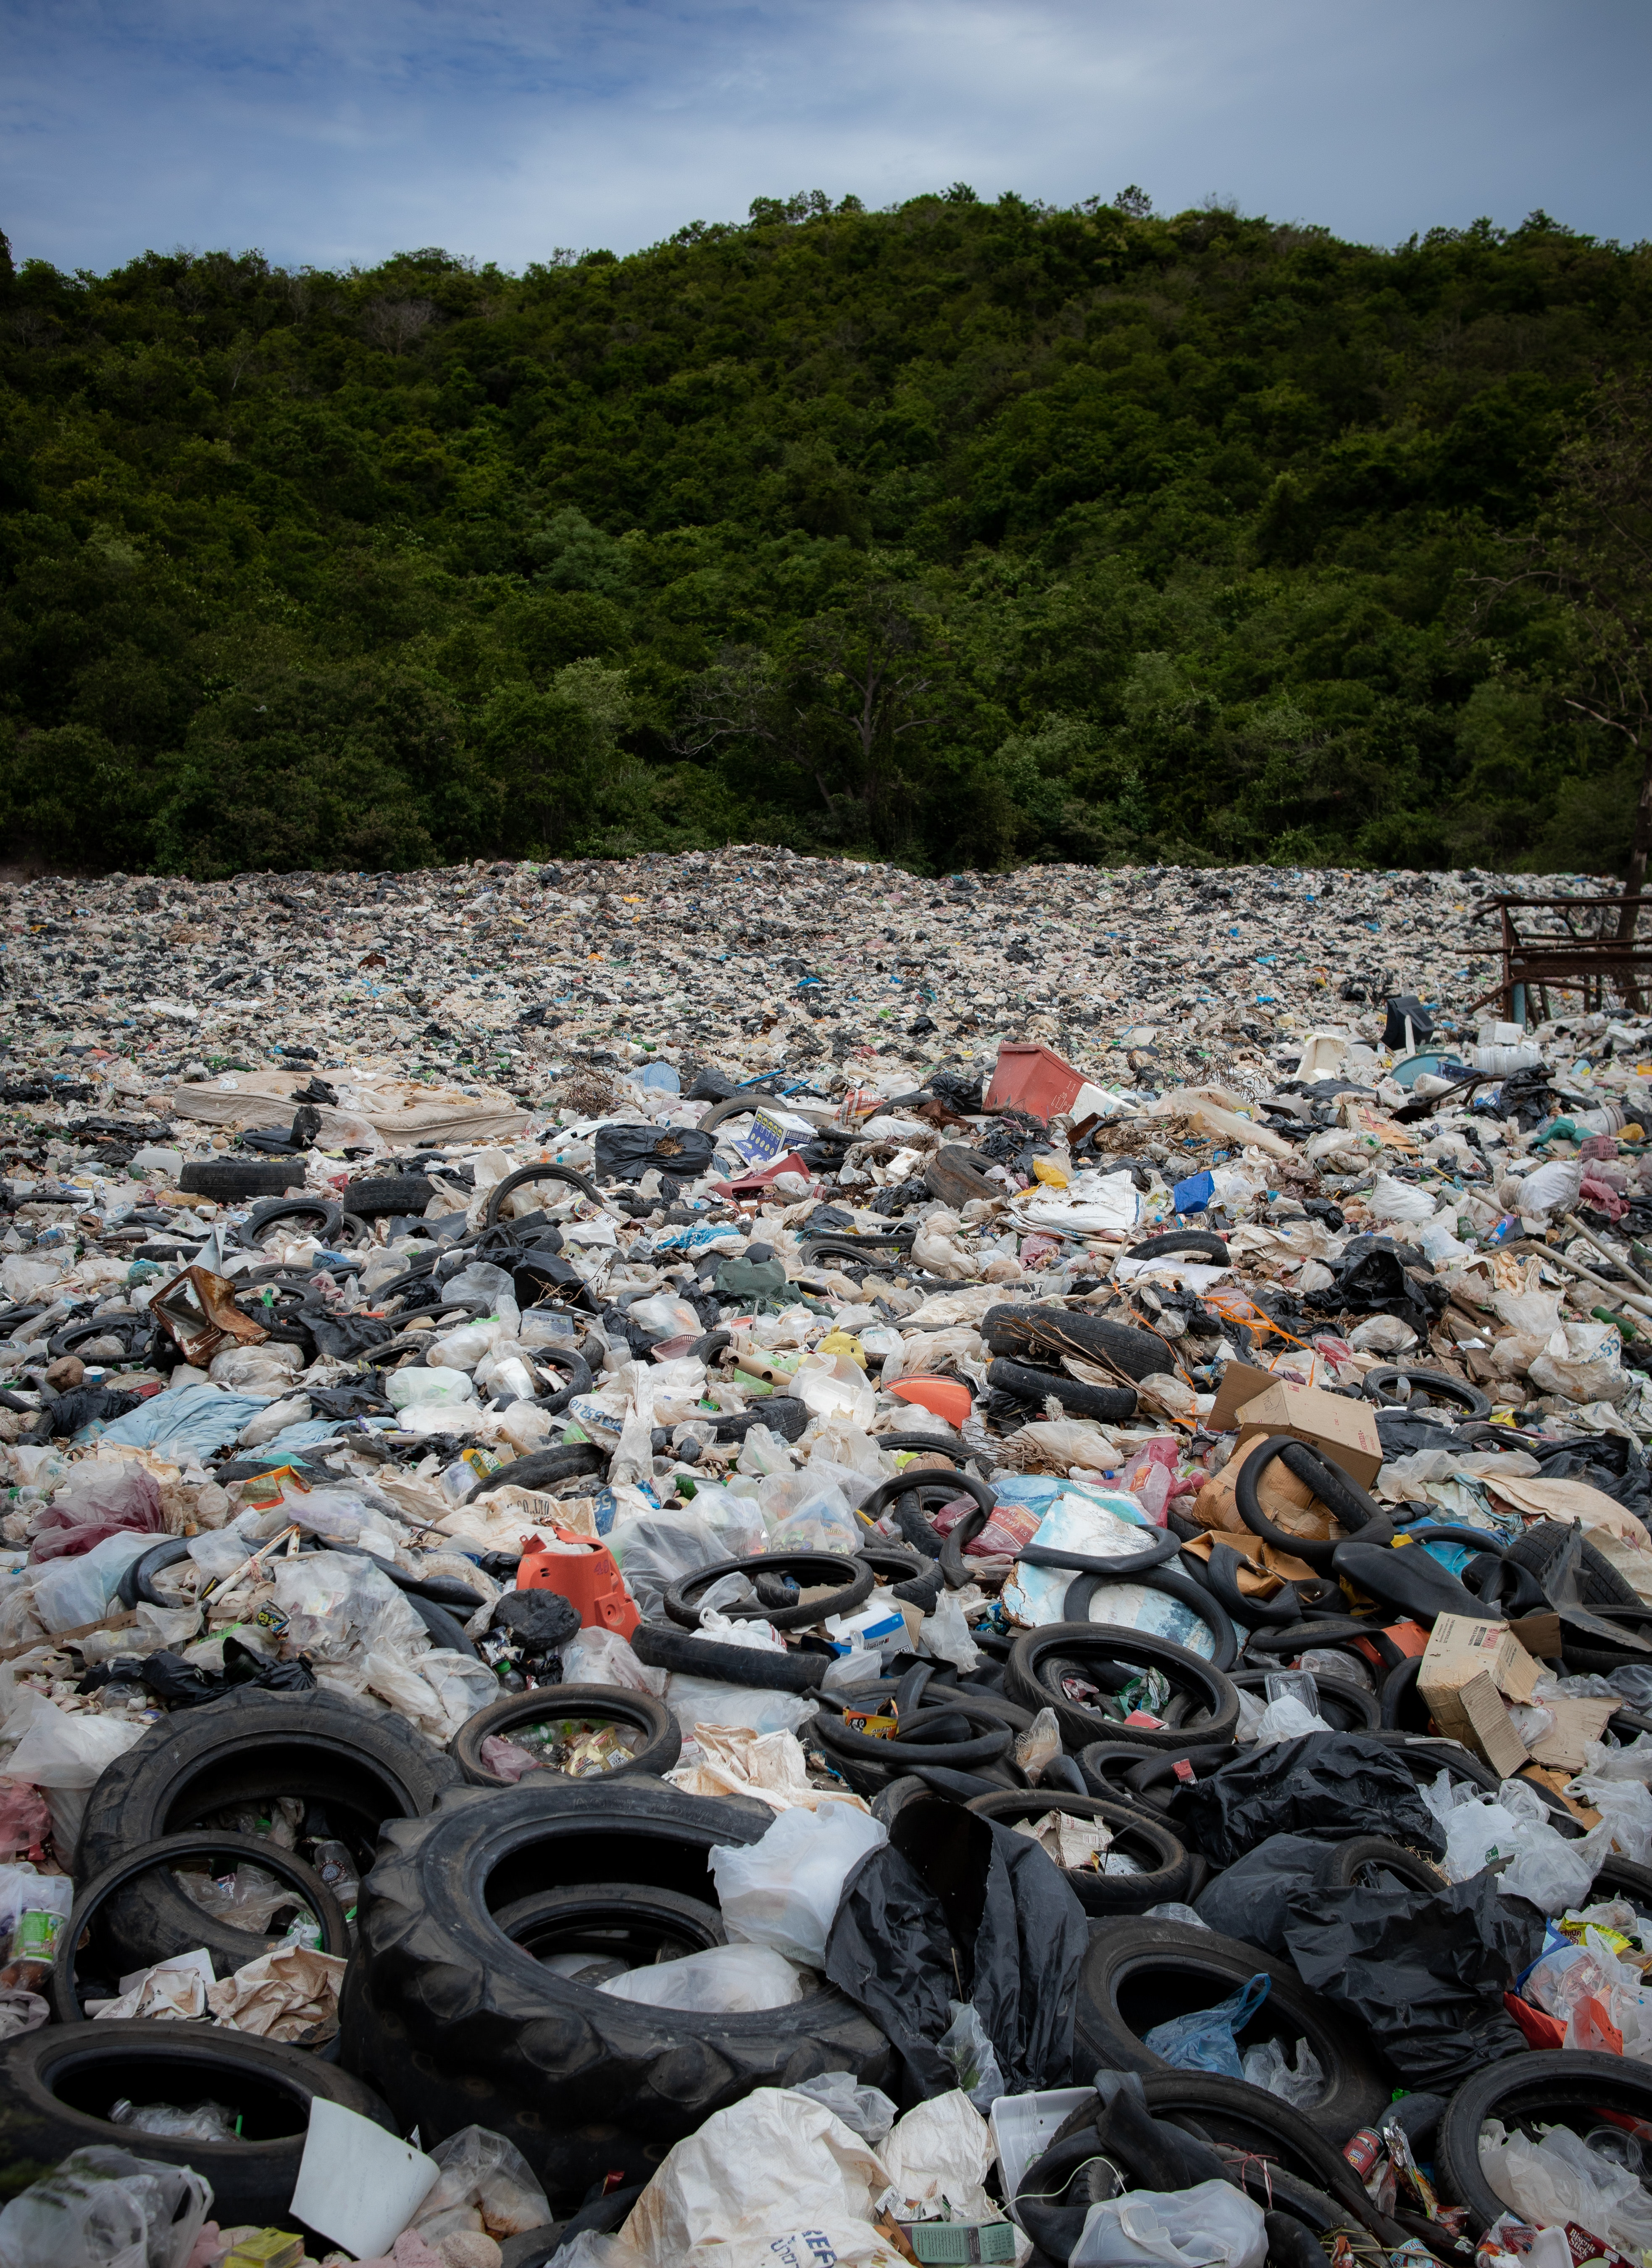 YOU SHOULD REALLY WORRY ABOUT PLASTICS